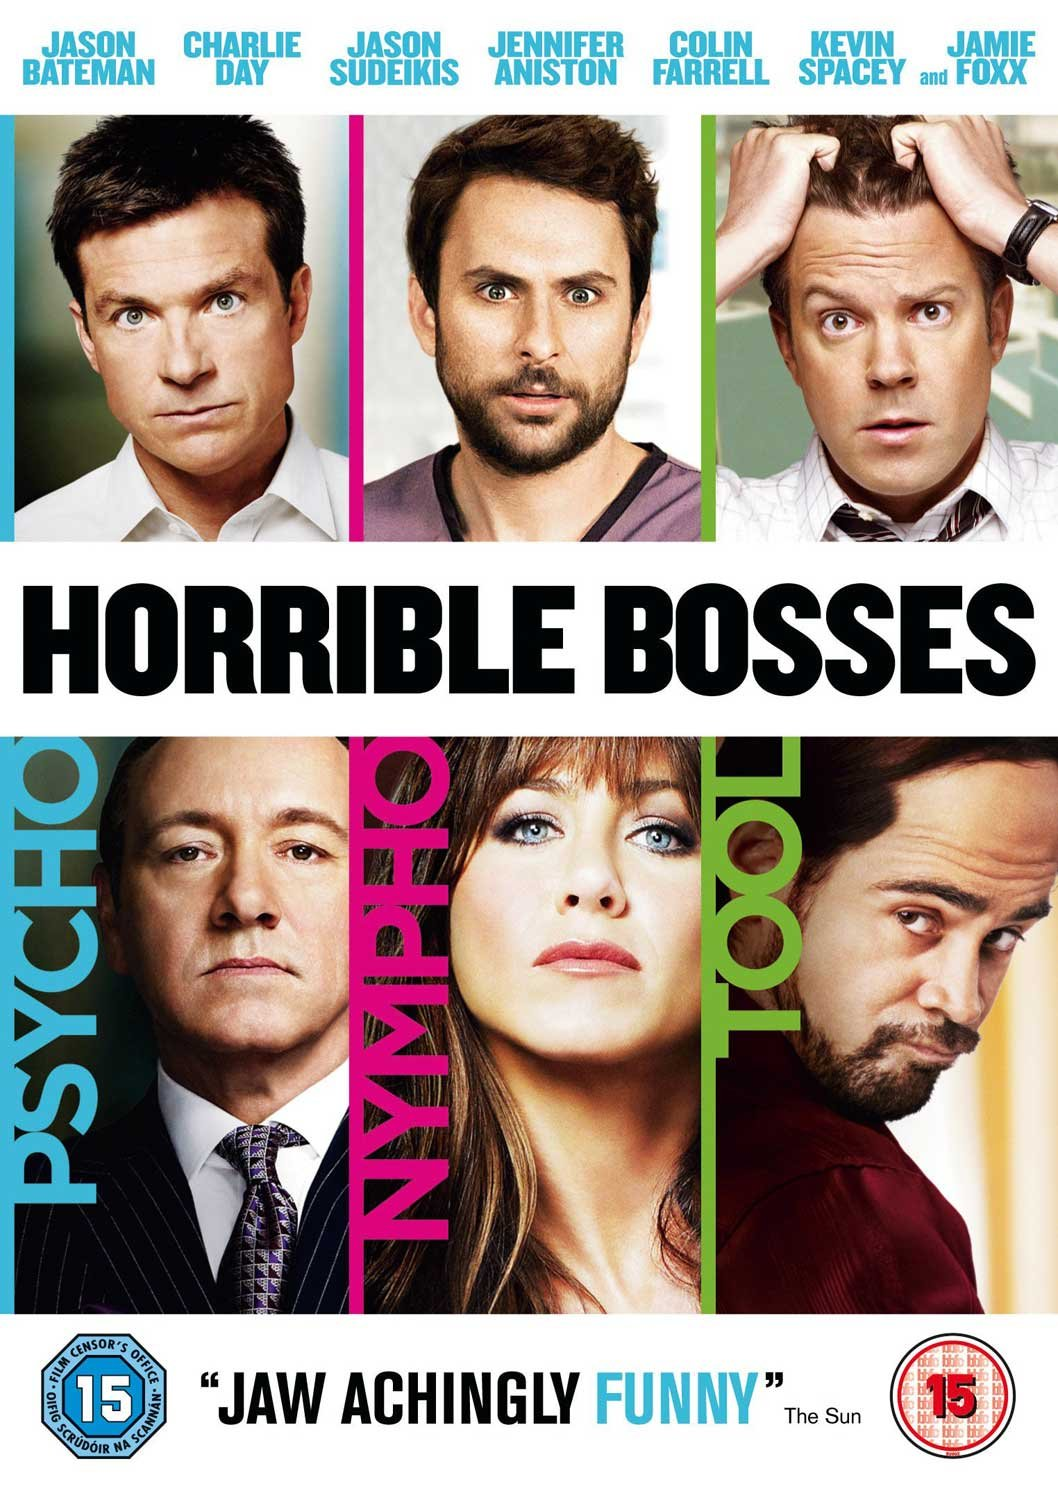 horrible bosses dvd amazon co uk jason bateman charlie horrible bosses dvd 2011 amazon co uk jason bateman charlie day jason sudeikis jennifer aniston colin farrell kevin spacey jamie foxx dvd